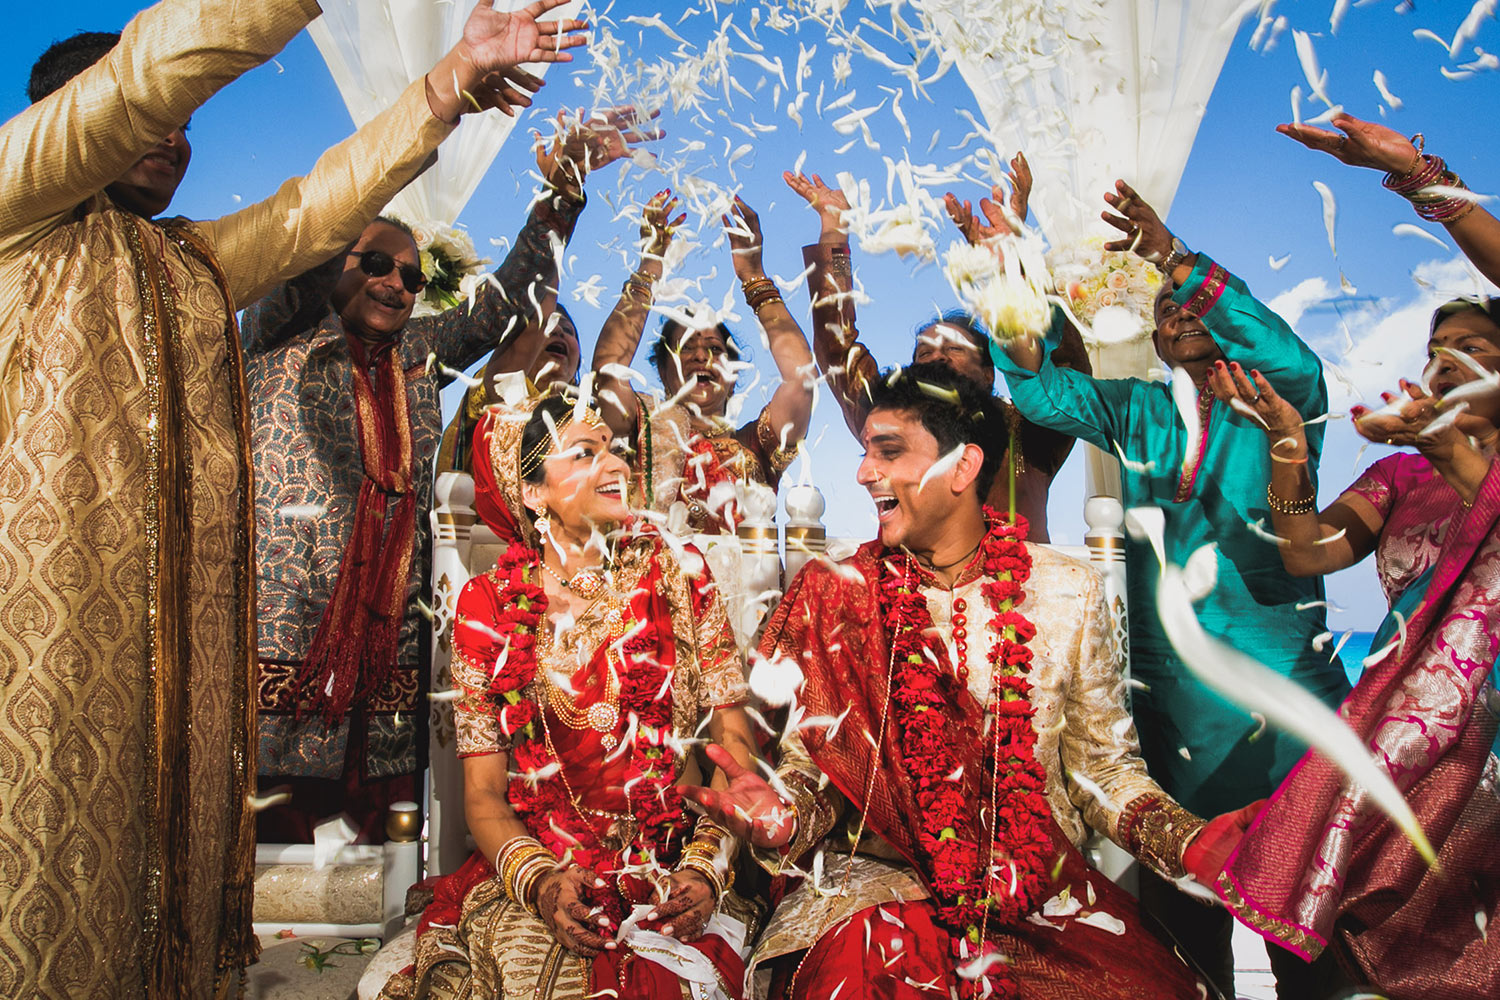 Indian couple showered with flowers at wedding ceremony by Callaway Gable